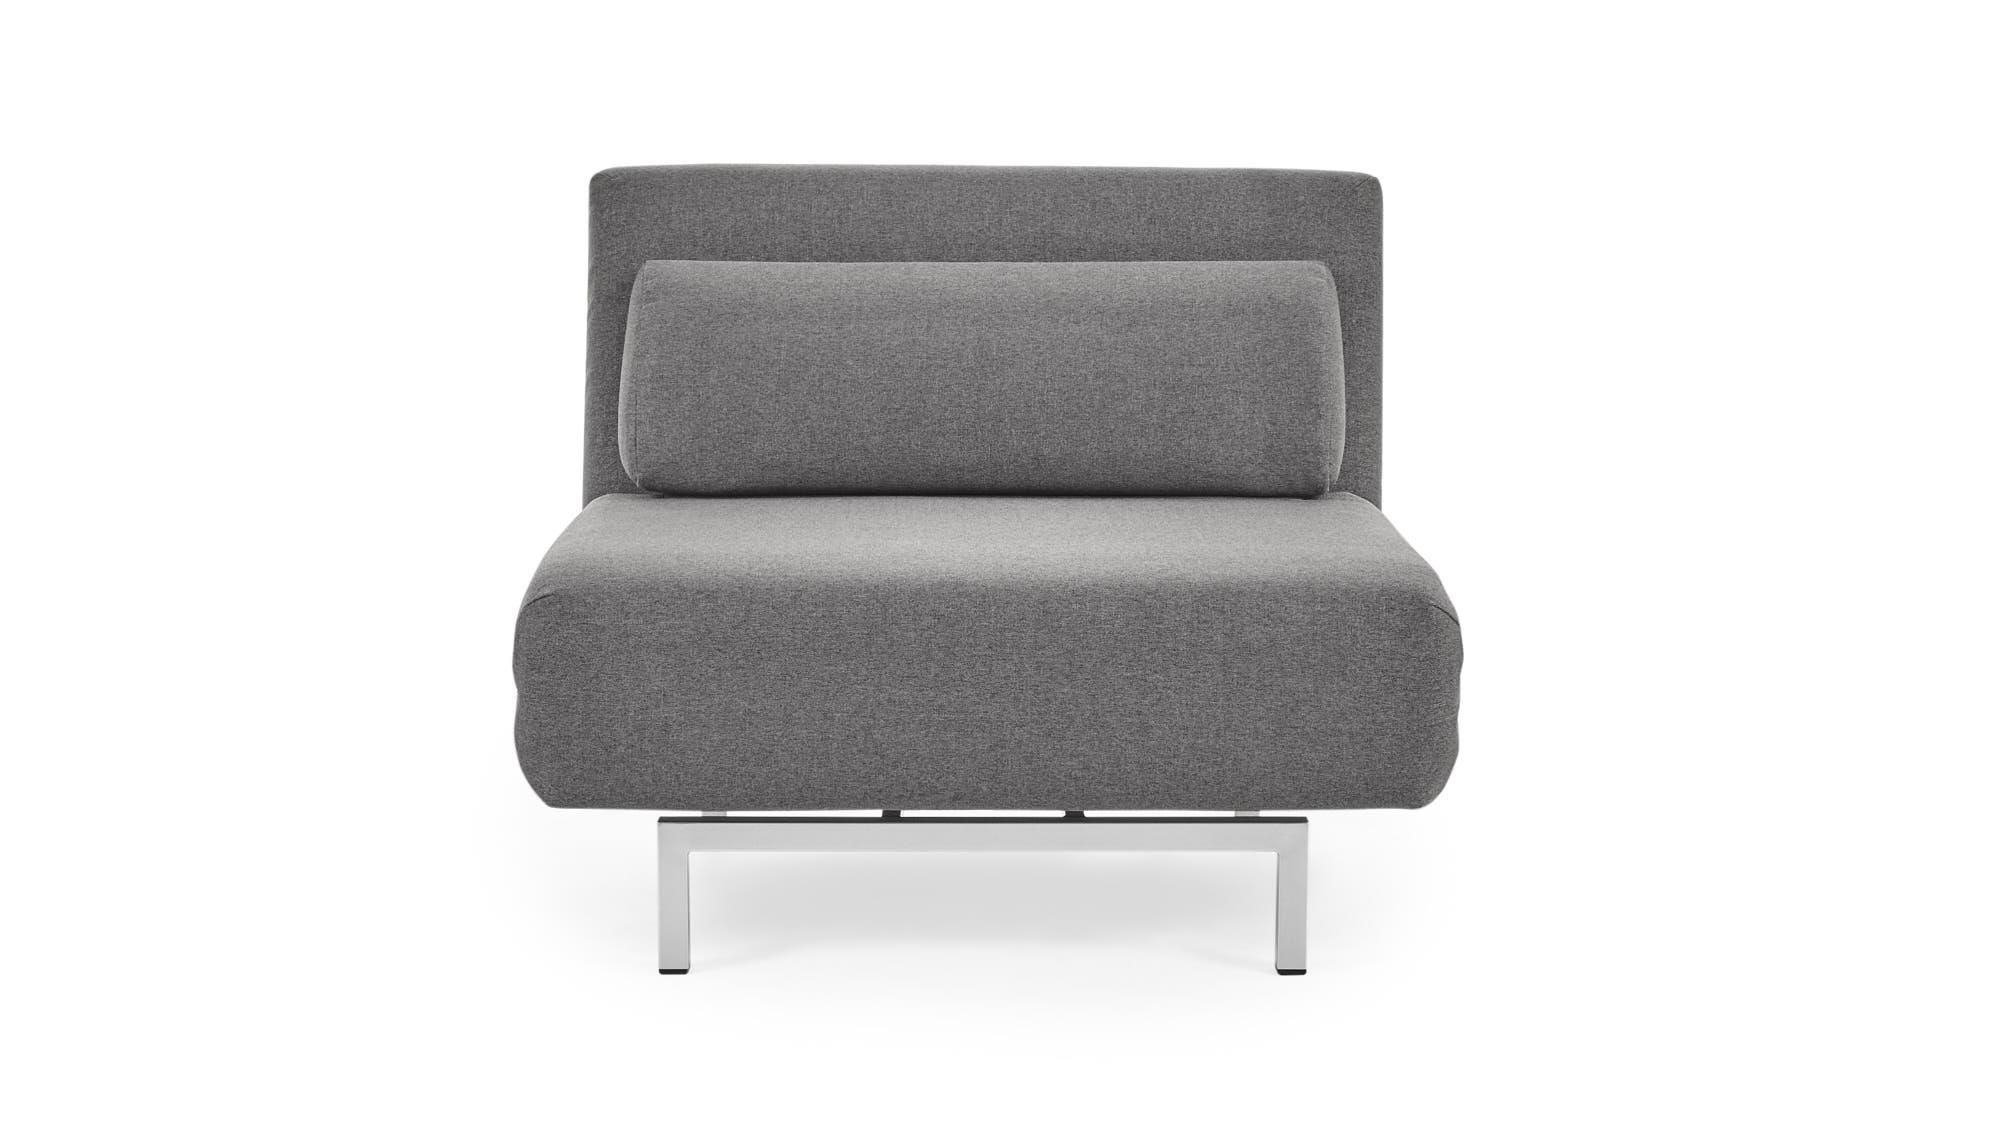 Le Vele Replica – Armchair Sofa Bed | Loungelovers Within Single Chair Sofa Beds (View 17 of 22)